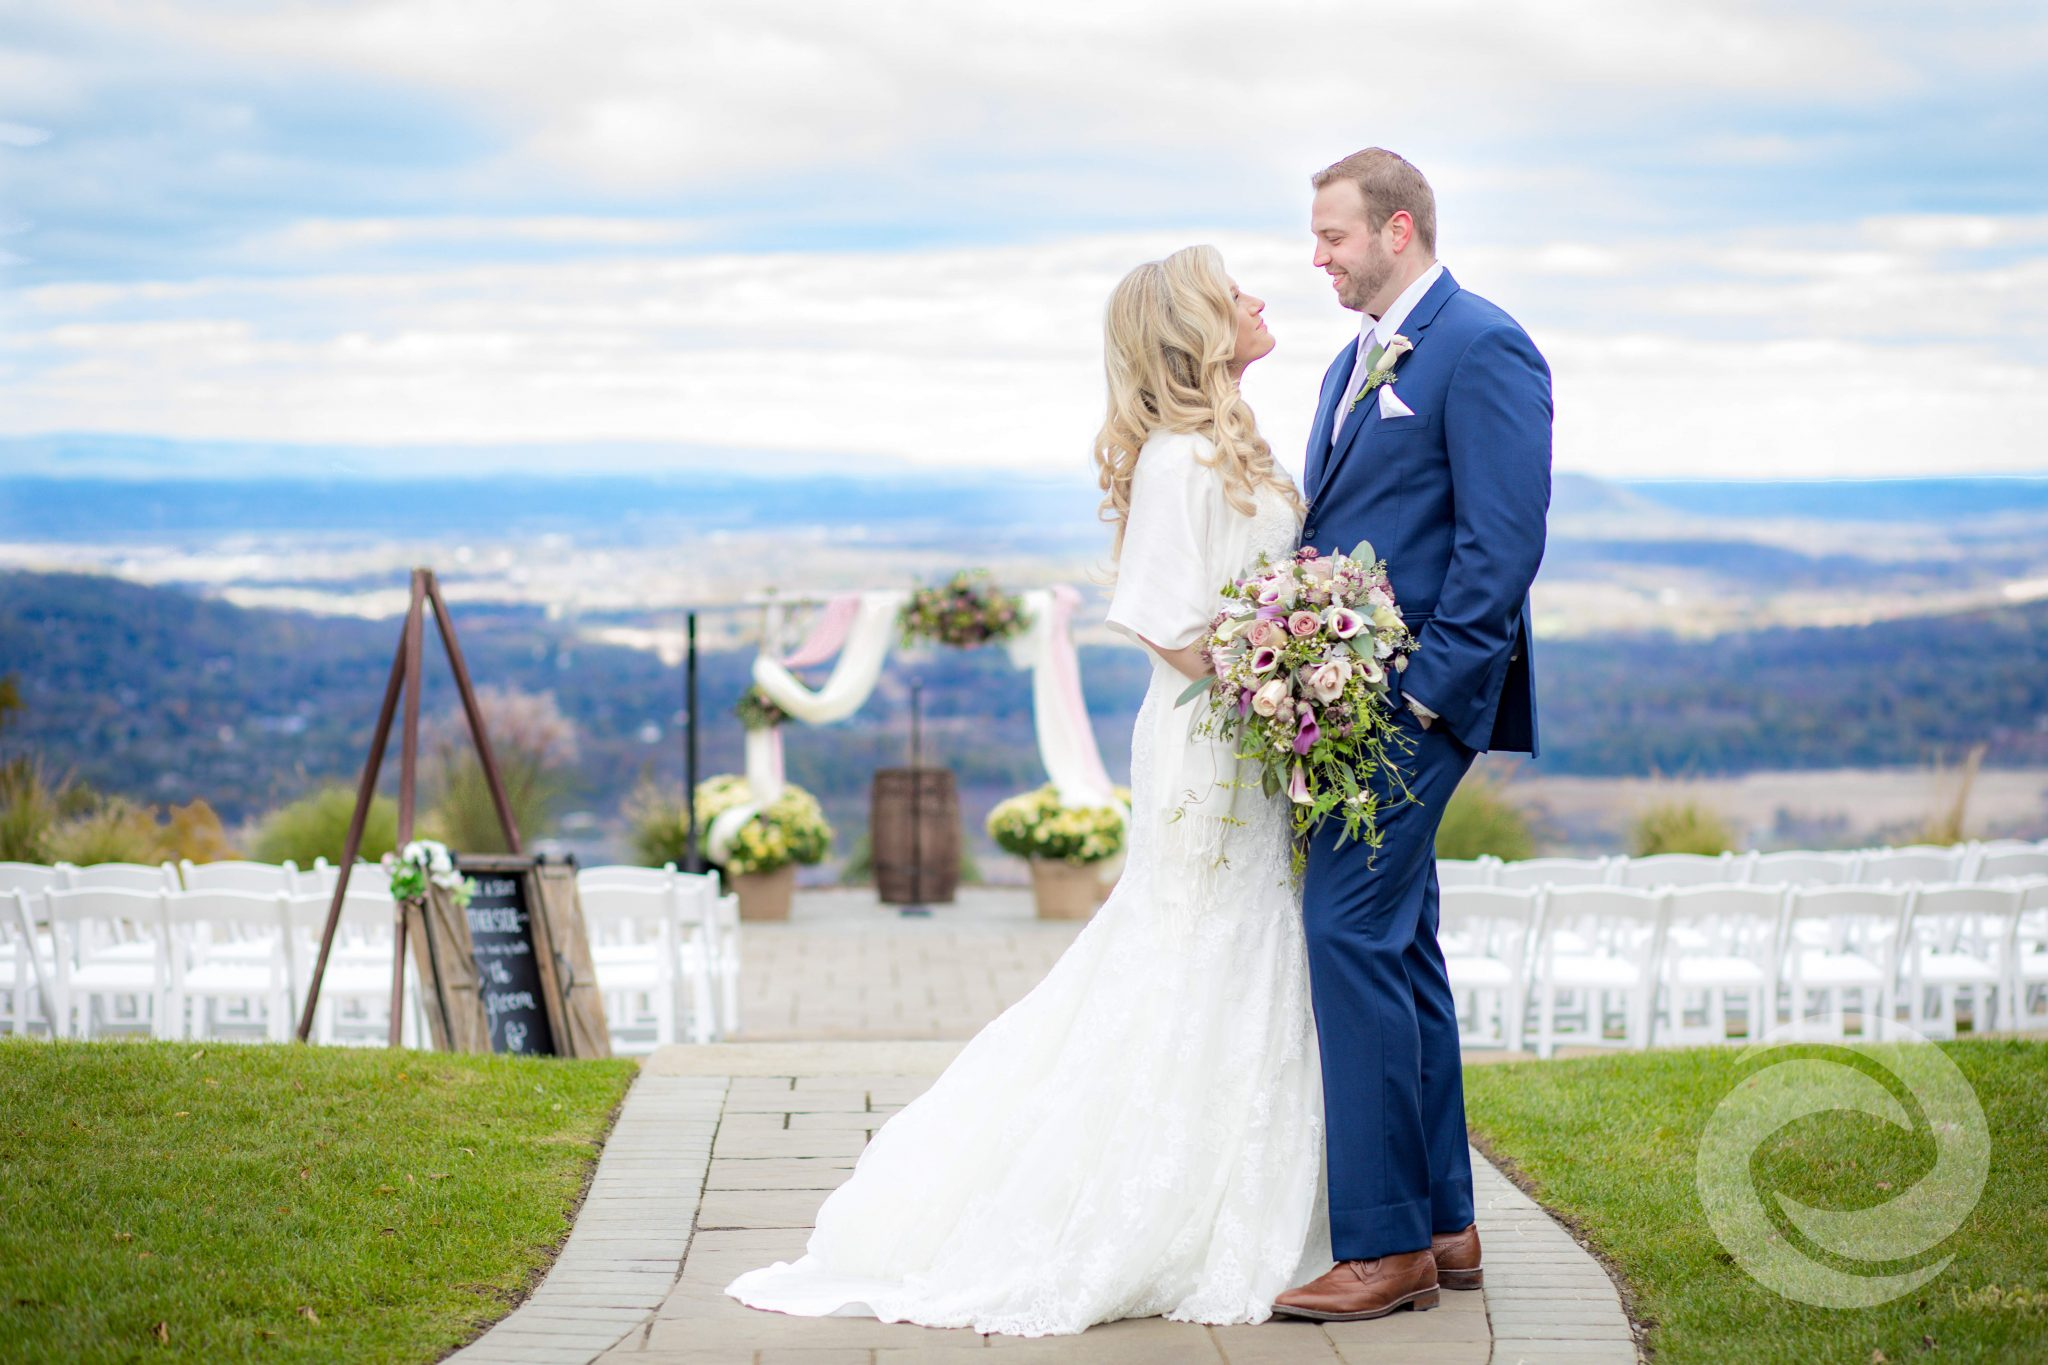 Wedding Photography at Mountain Creek Resort